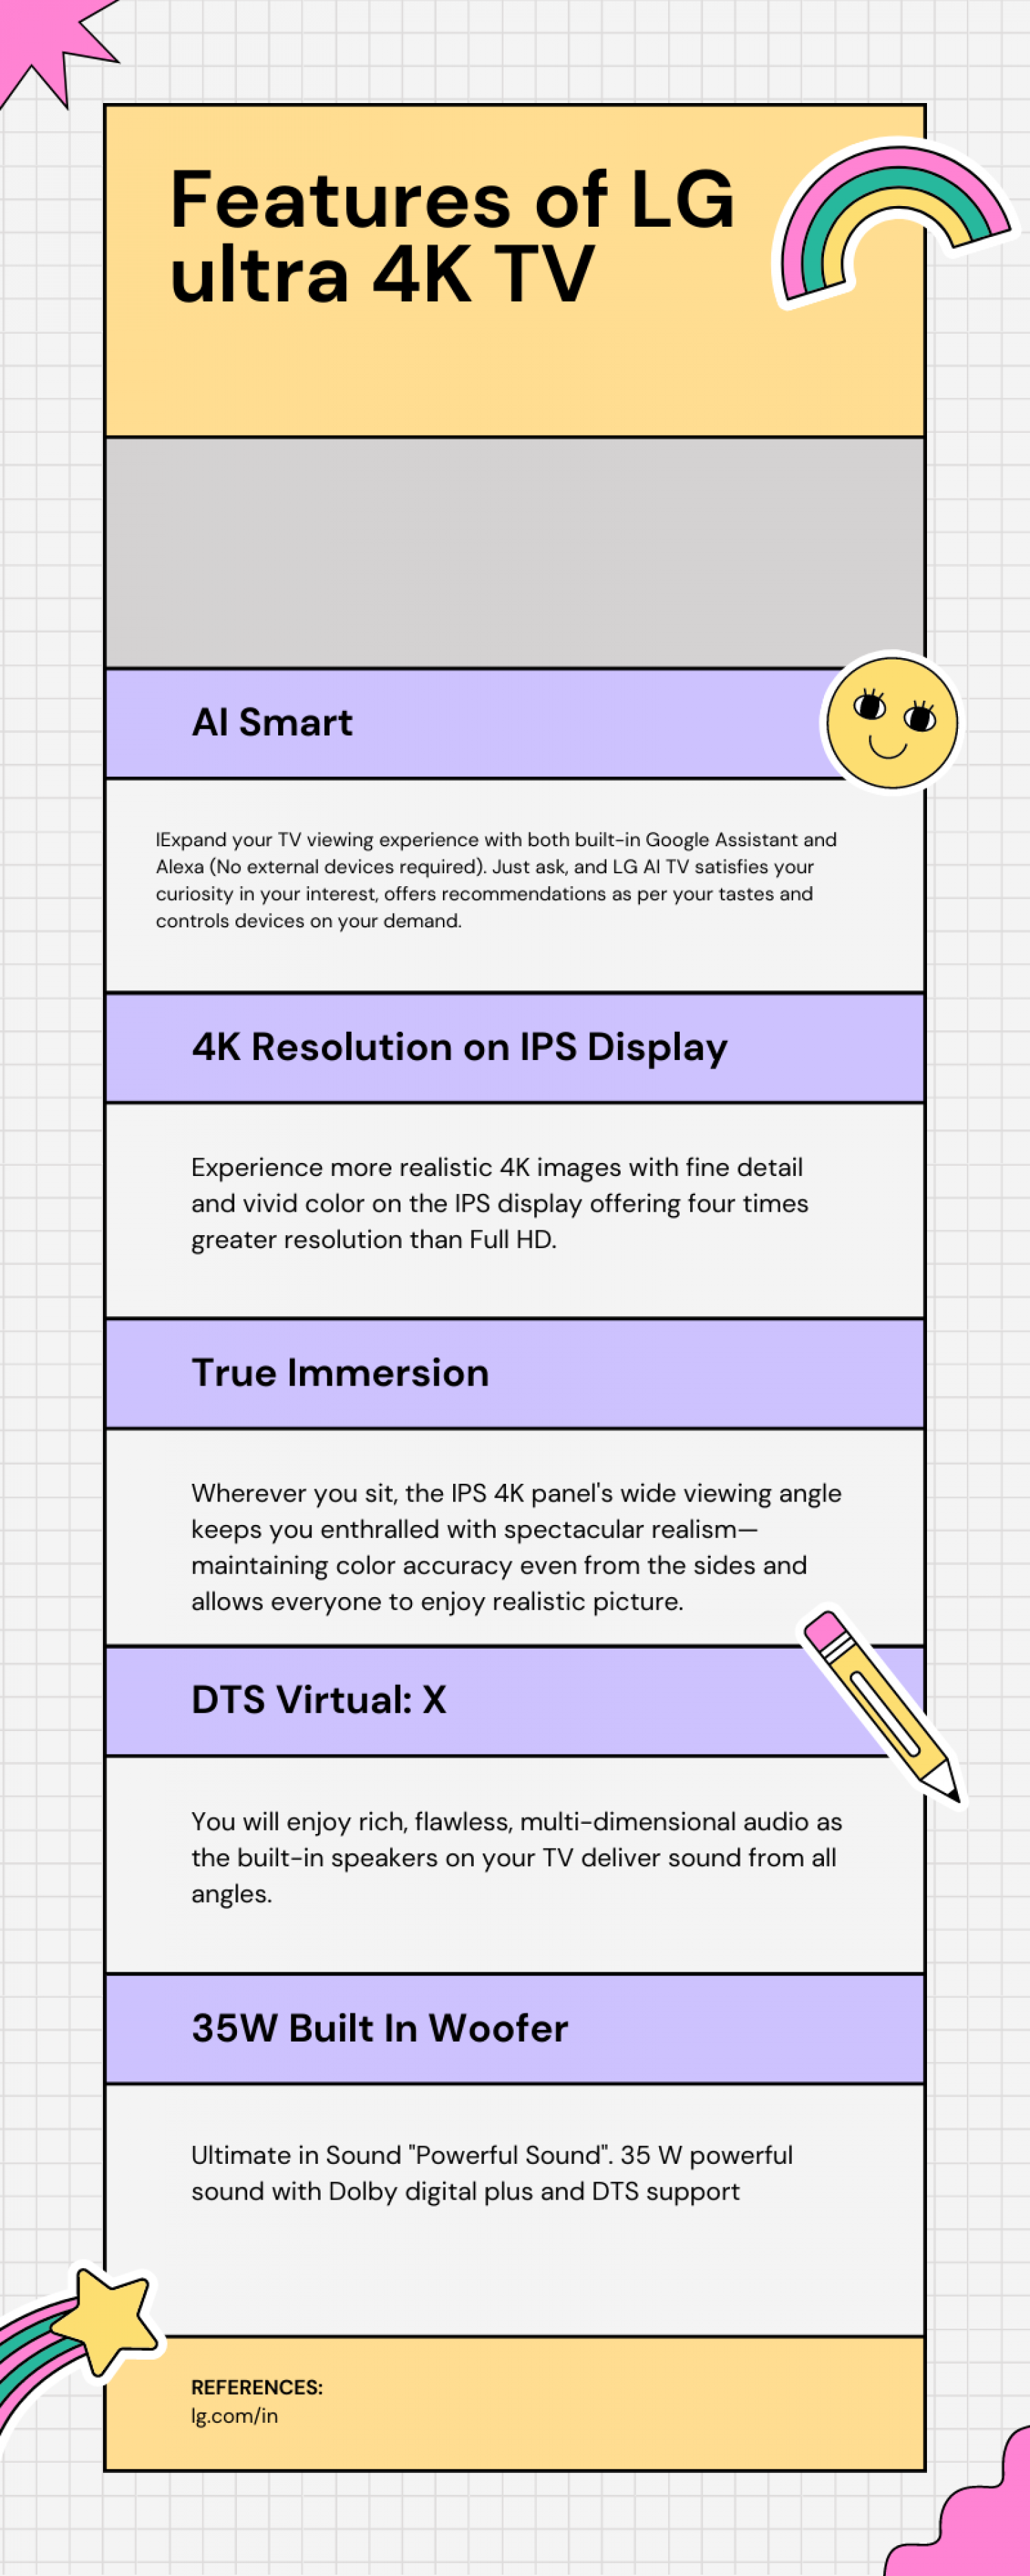 Features of LG ultra 4K TV Infographic